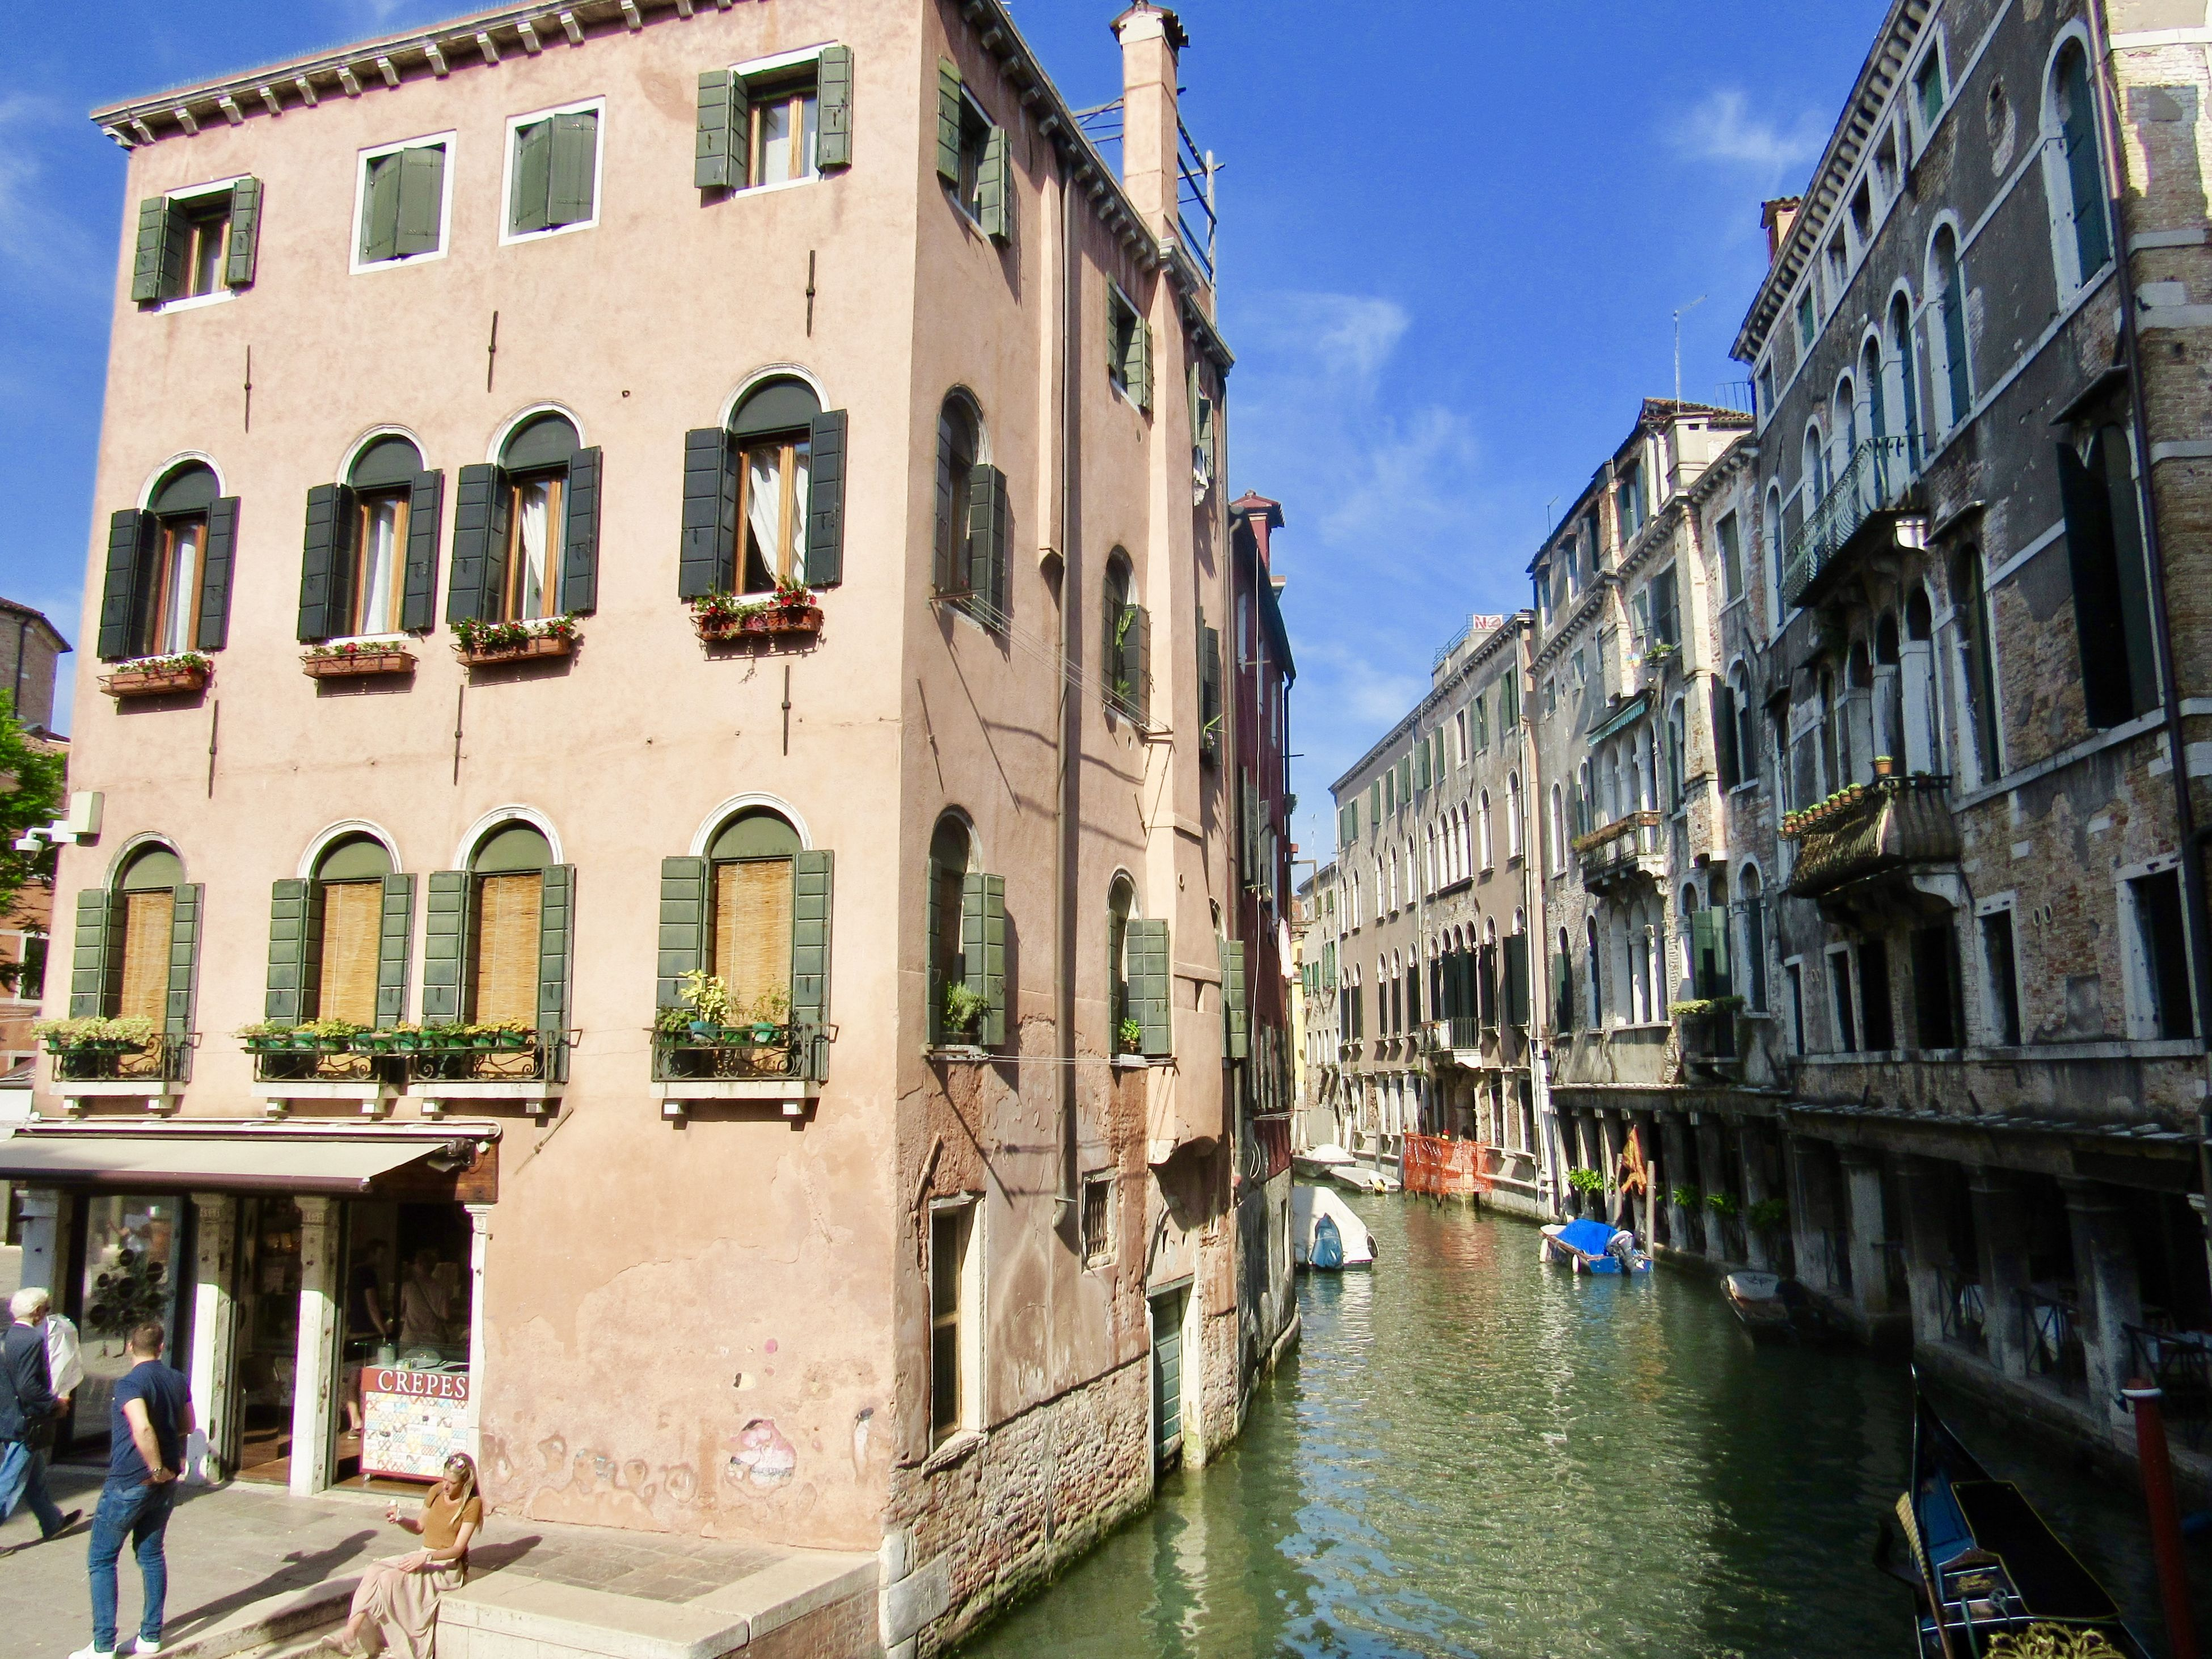 architecture, building exterior, built structure, canal, day, water, arch, outdoors, nautical vessel, waterfront, window, sky, travel destinations, real people, nature, gondola - traditional boat